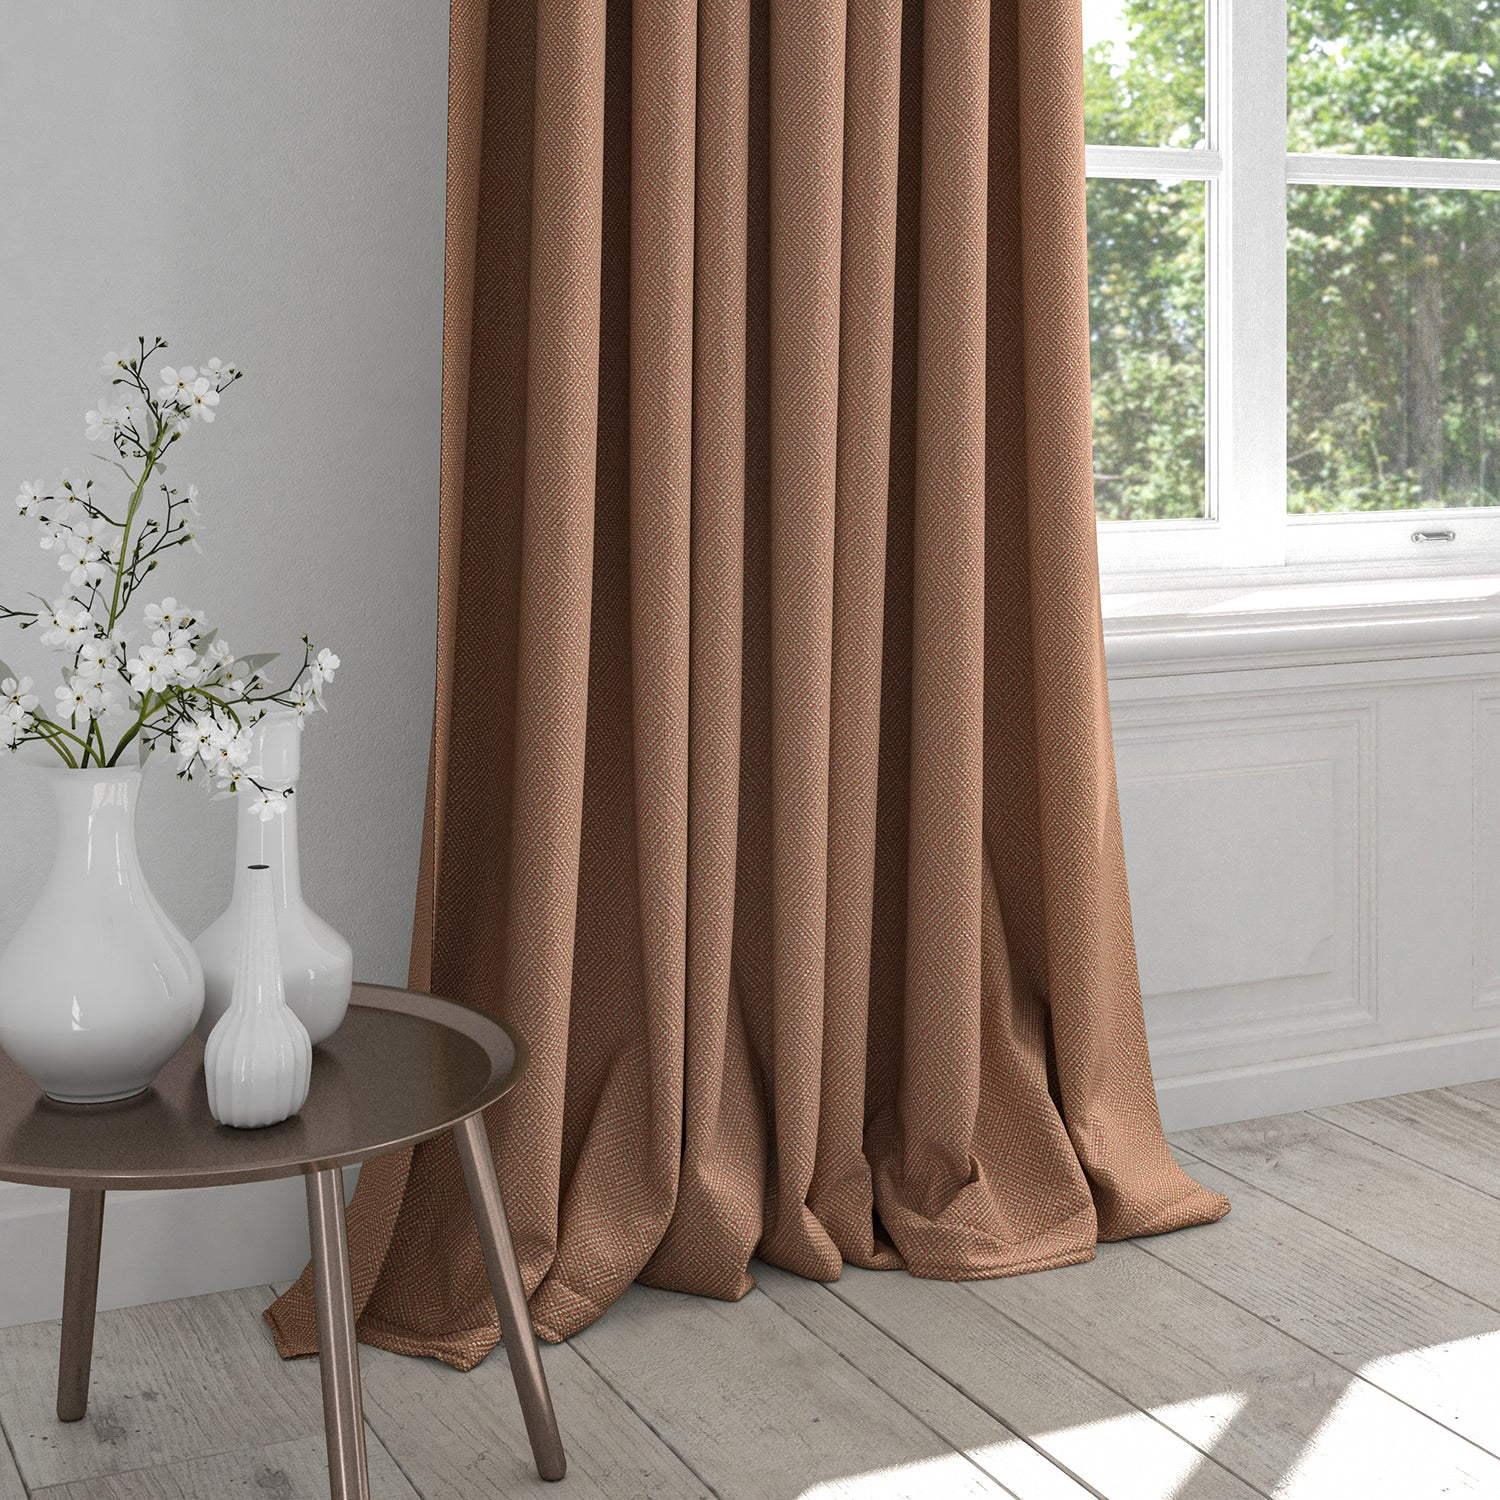 Curtain in an orange fabric with light neutral woven geometric design